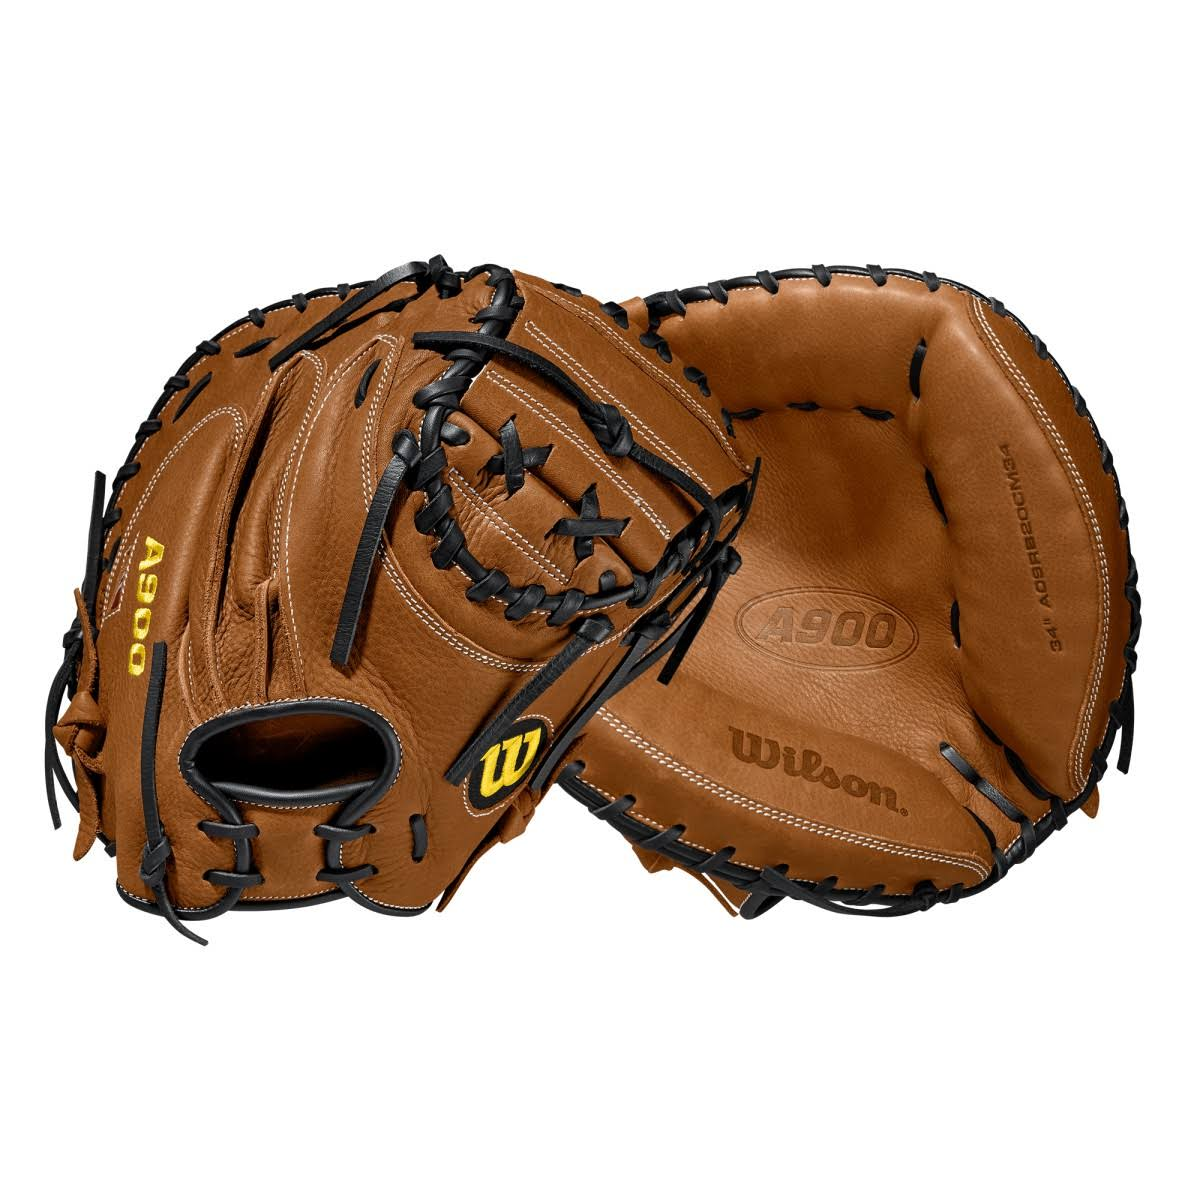 "Wilson 2020 A900 34"" Baseball Catcher's Mitt"